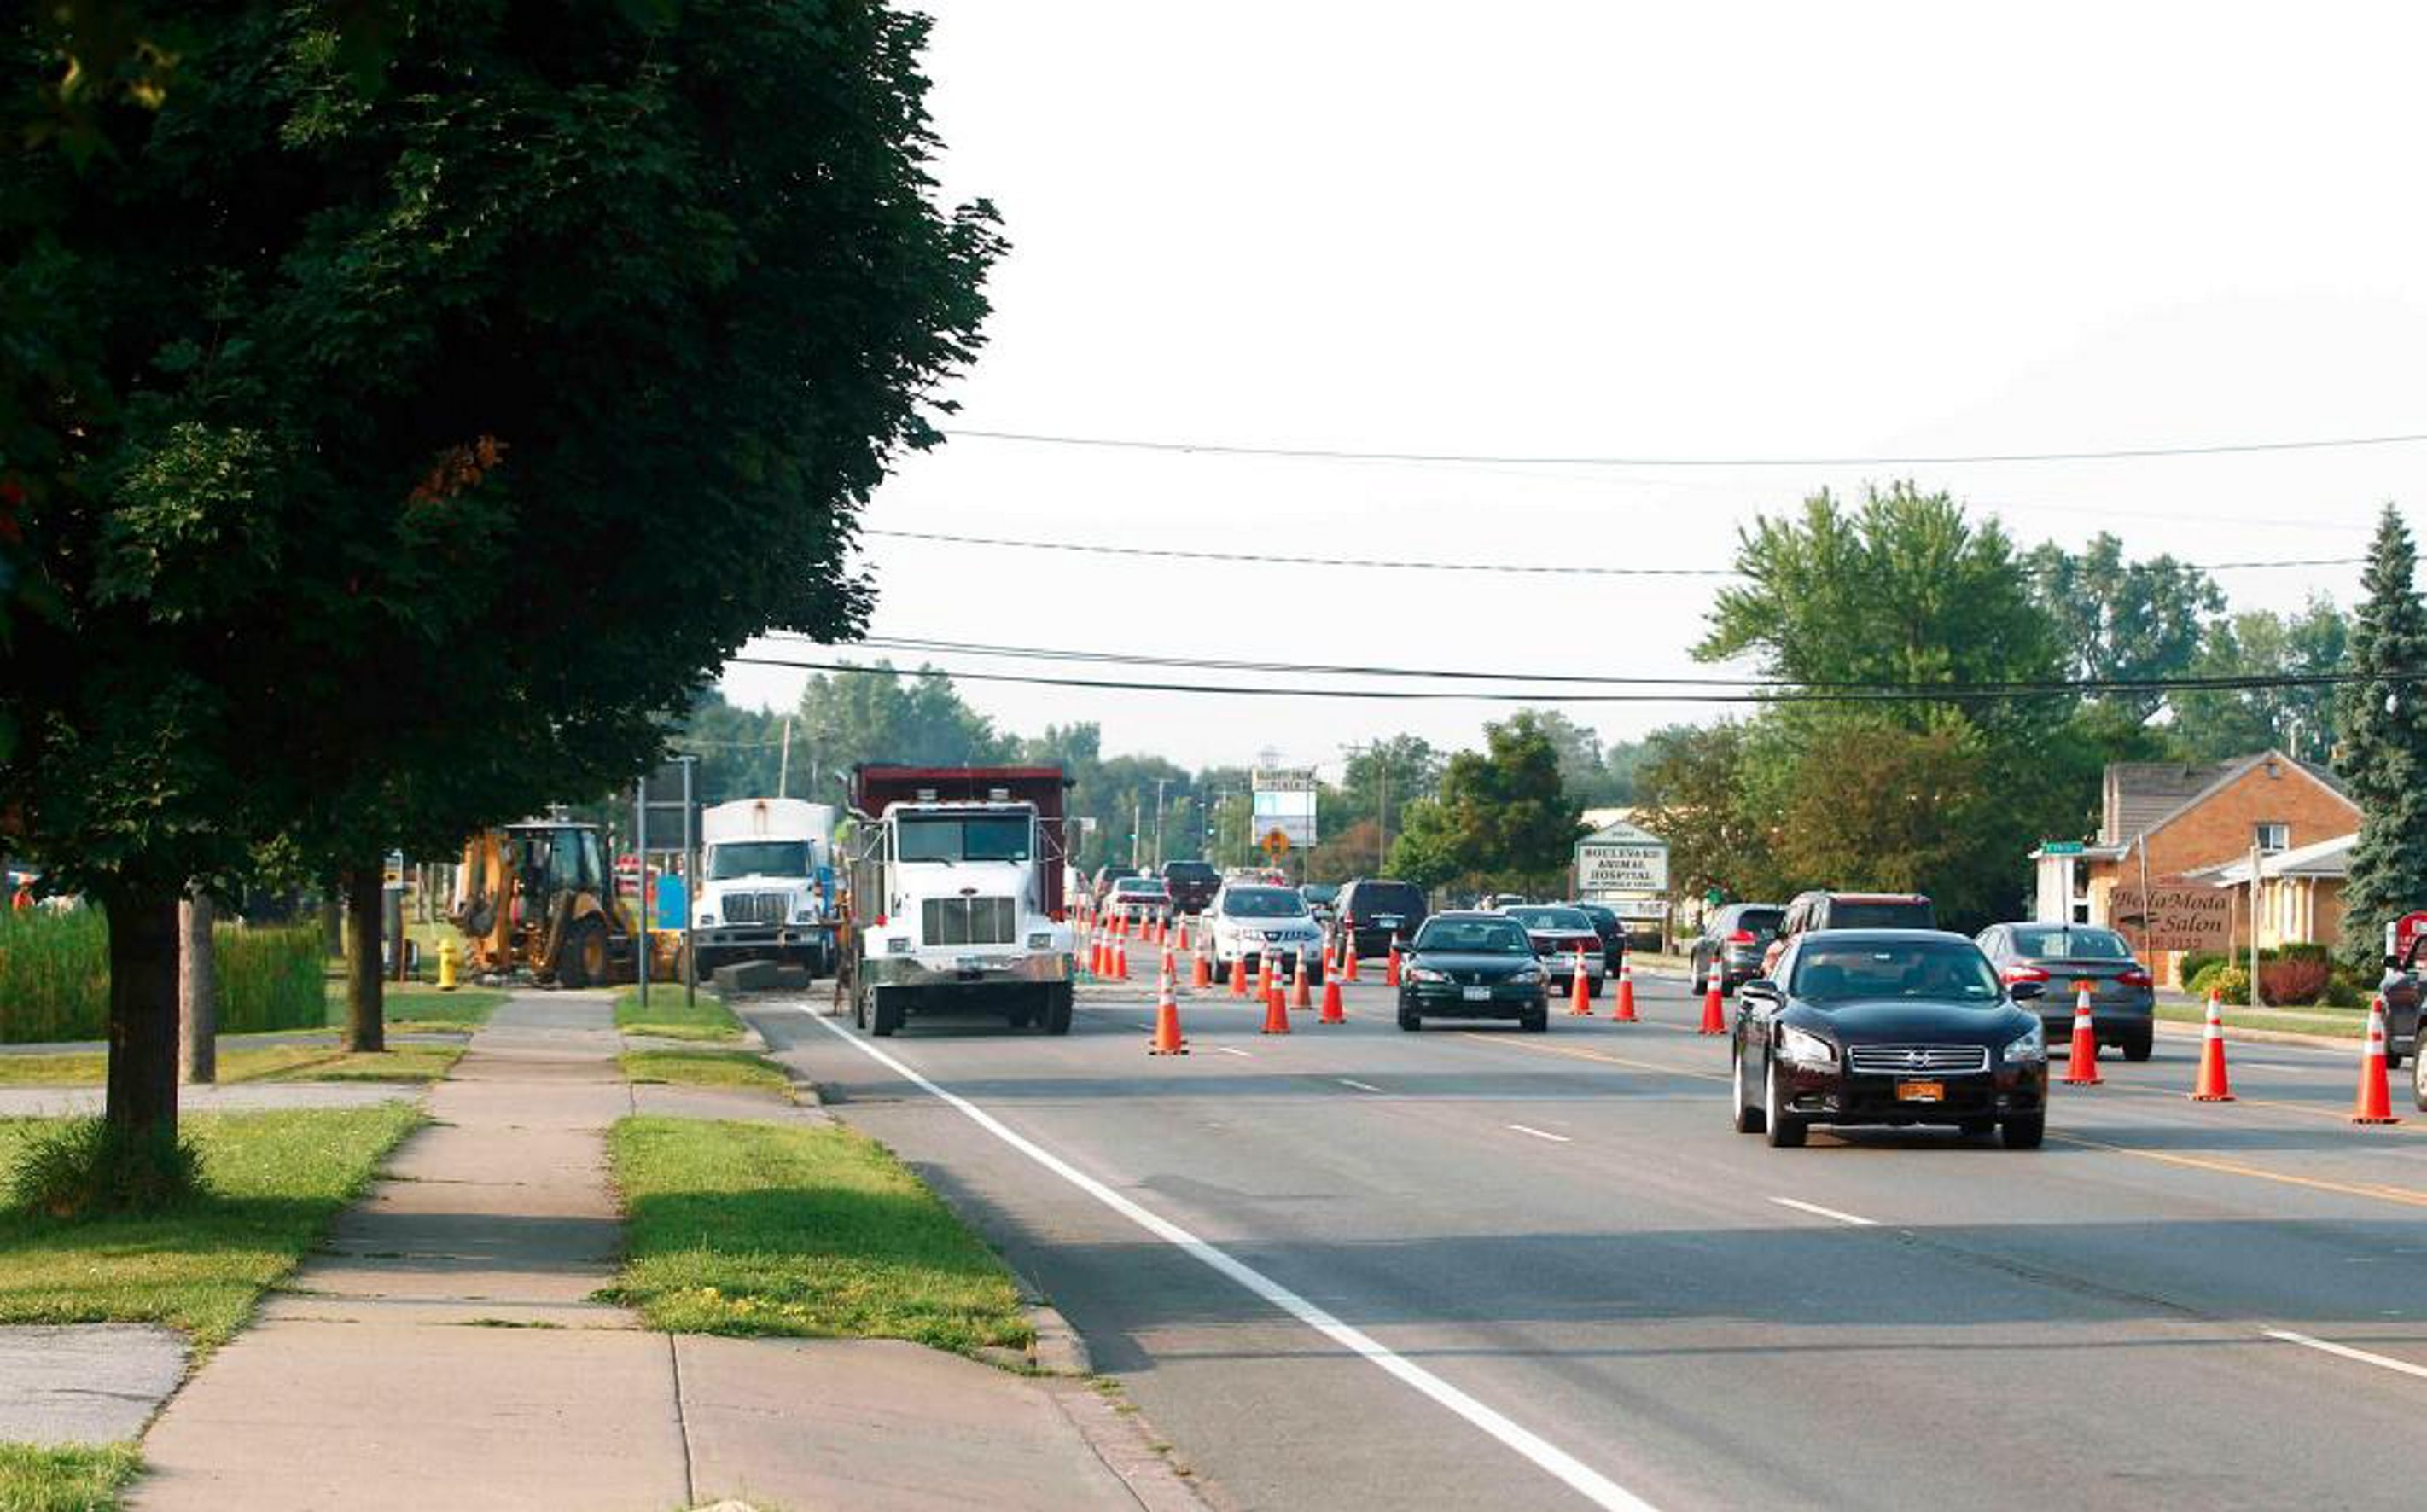 Traffic cones mark northbound lanes closure on Niagara Falls Boulevard today due to a water main break at North French Road in Amherst. (John Hickey/Buffalo News)